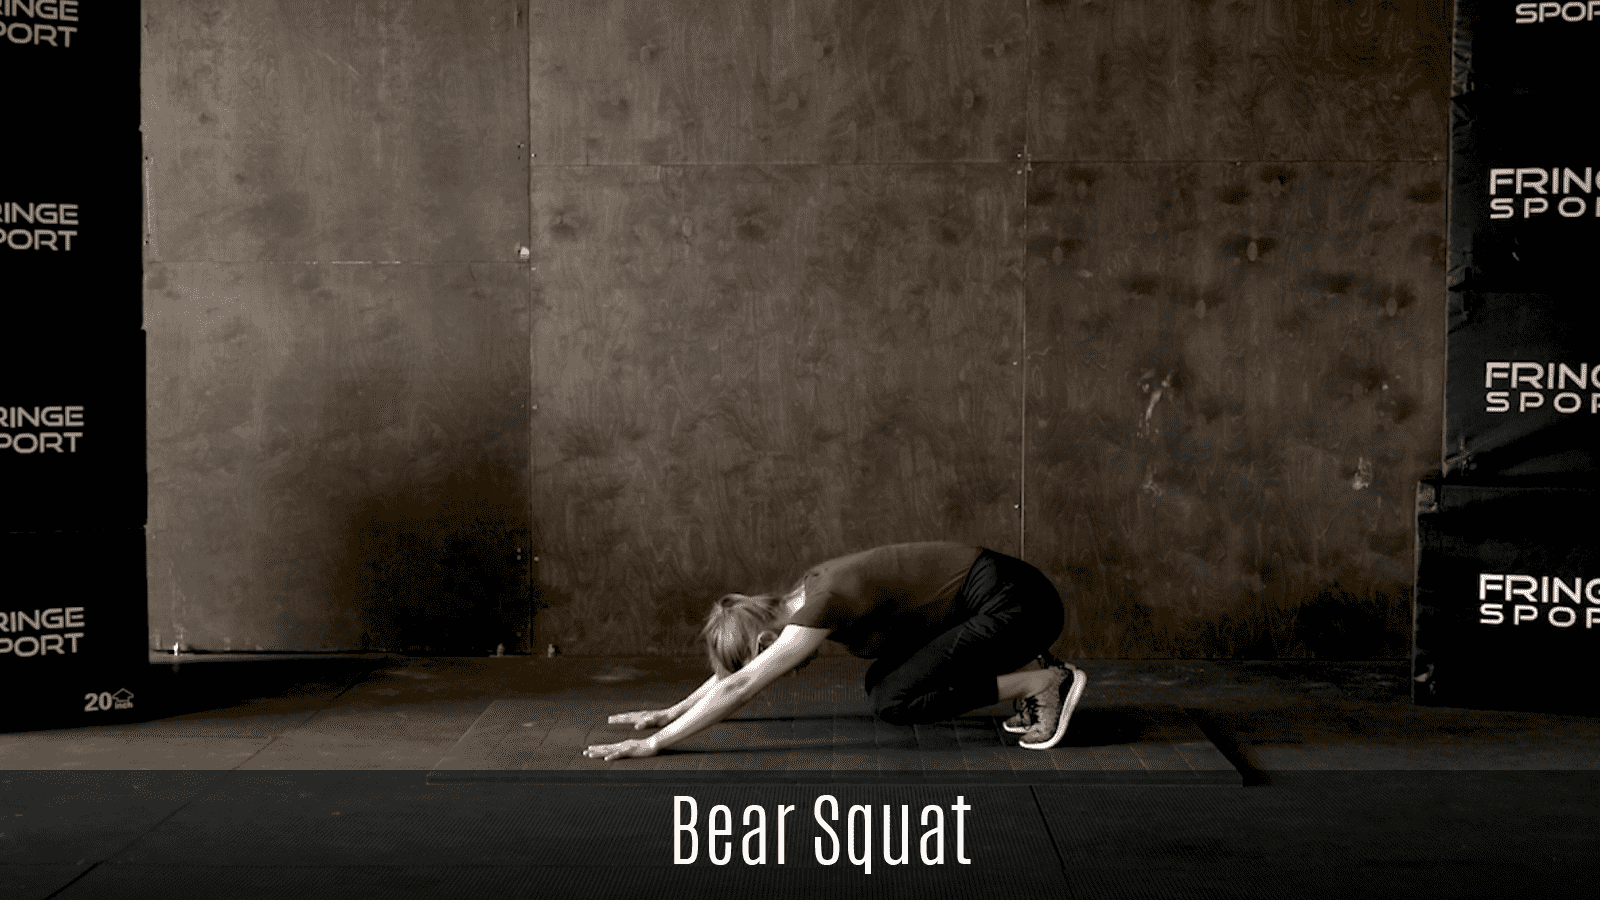 bear squat exercise demo